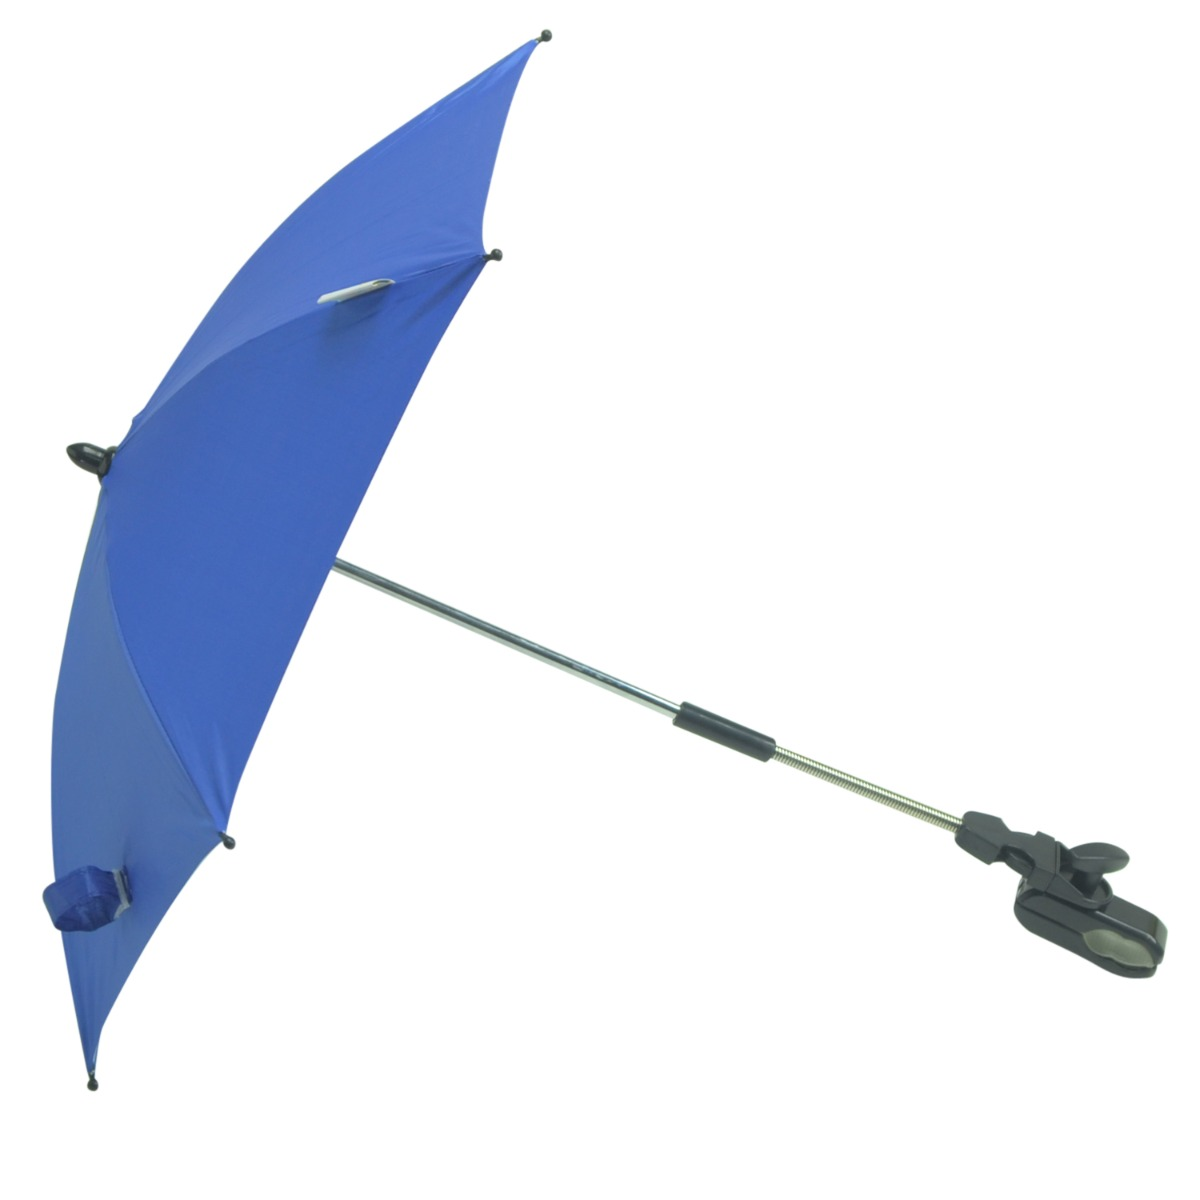 Baby-Parasol-Universal-Sun-Umbrella-Shade-Maker-Canopy-For-Pushchair-Pram-Buggy thumbnail 24